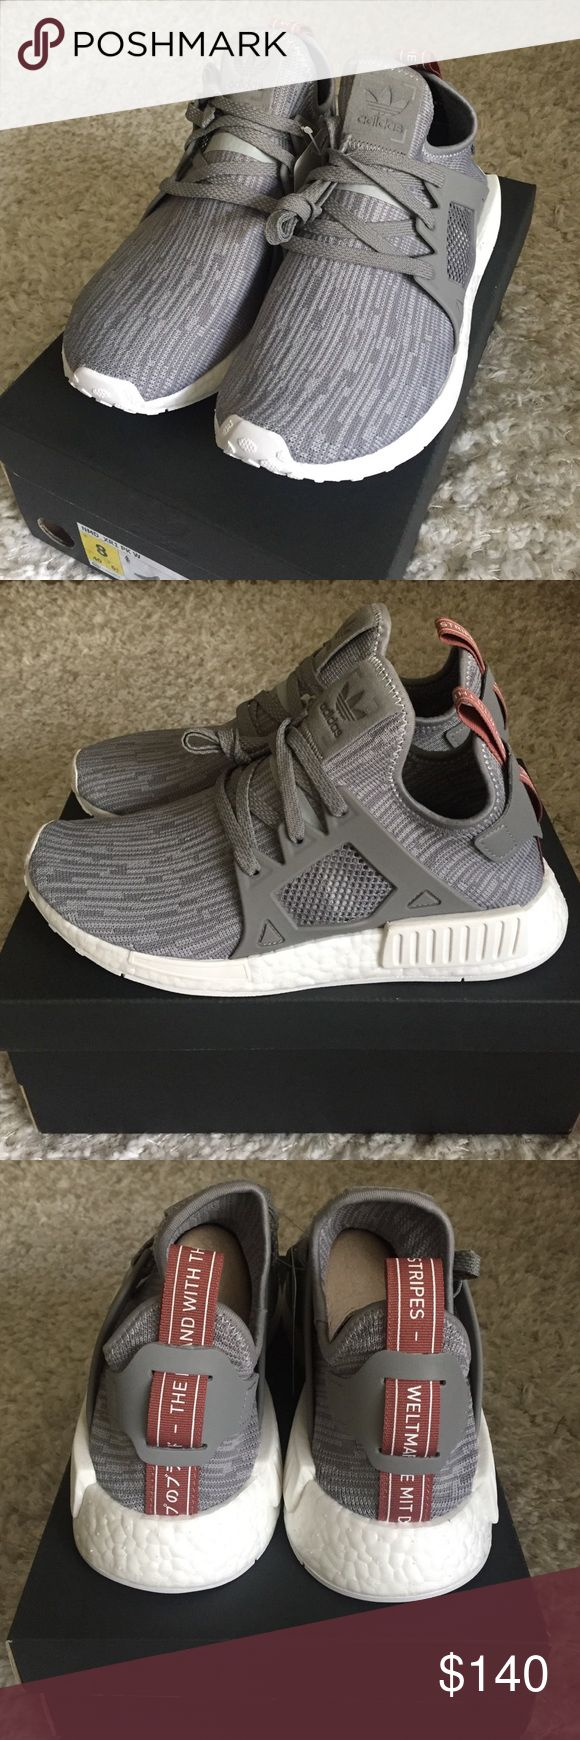 Adidas NMD XR 1 Striped Army Green PK Fabric S 32217 Spanish Direct Mail - Spanish Generation